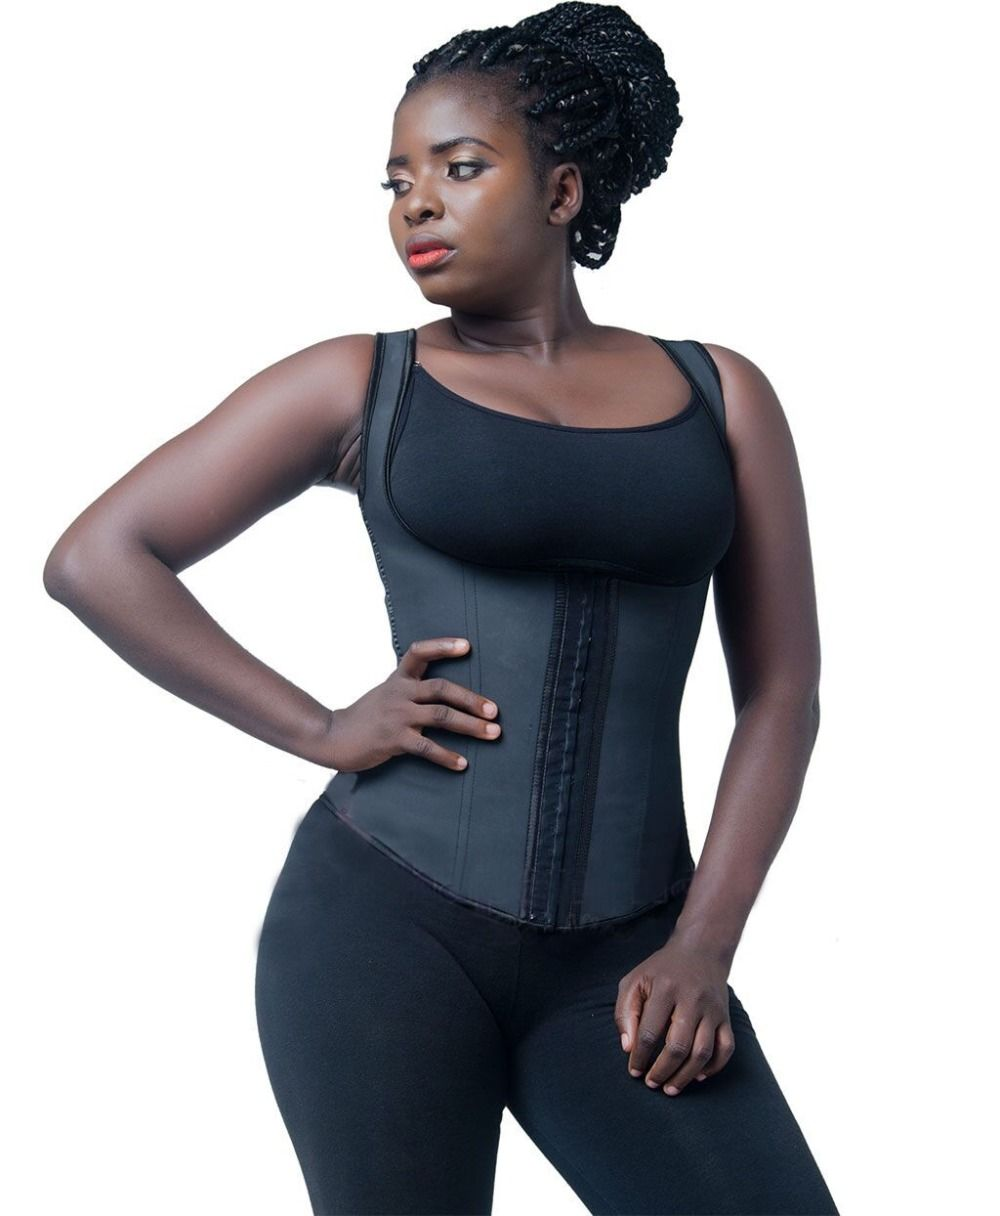 8f080444640 Find More Waist Cinchers Information about Firm compression latex waist  trainer vest 3 hook thick strap plus size steel boned latex shaper slimming  latex ...